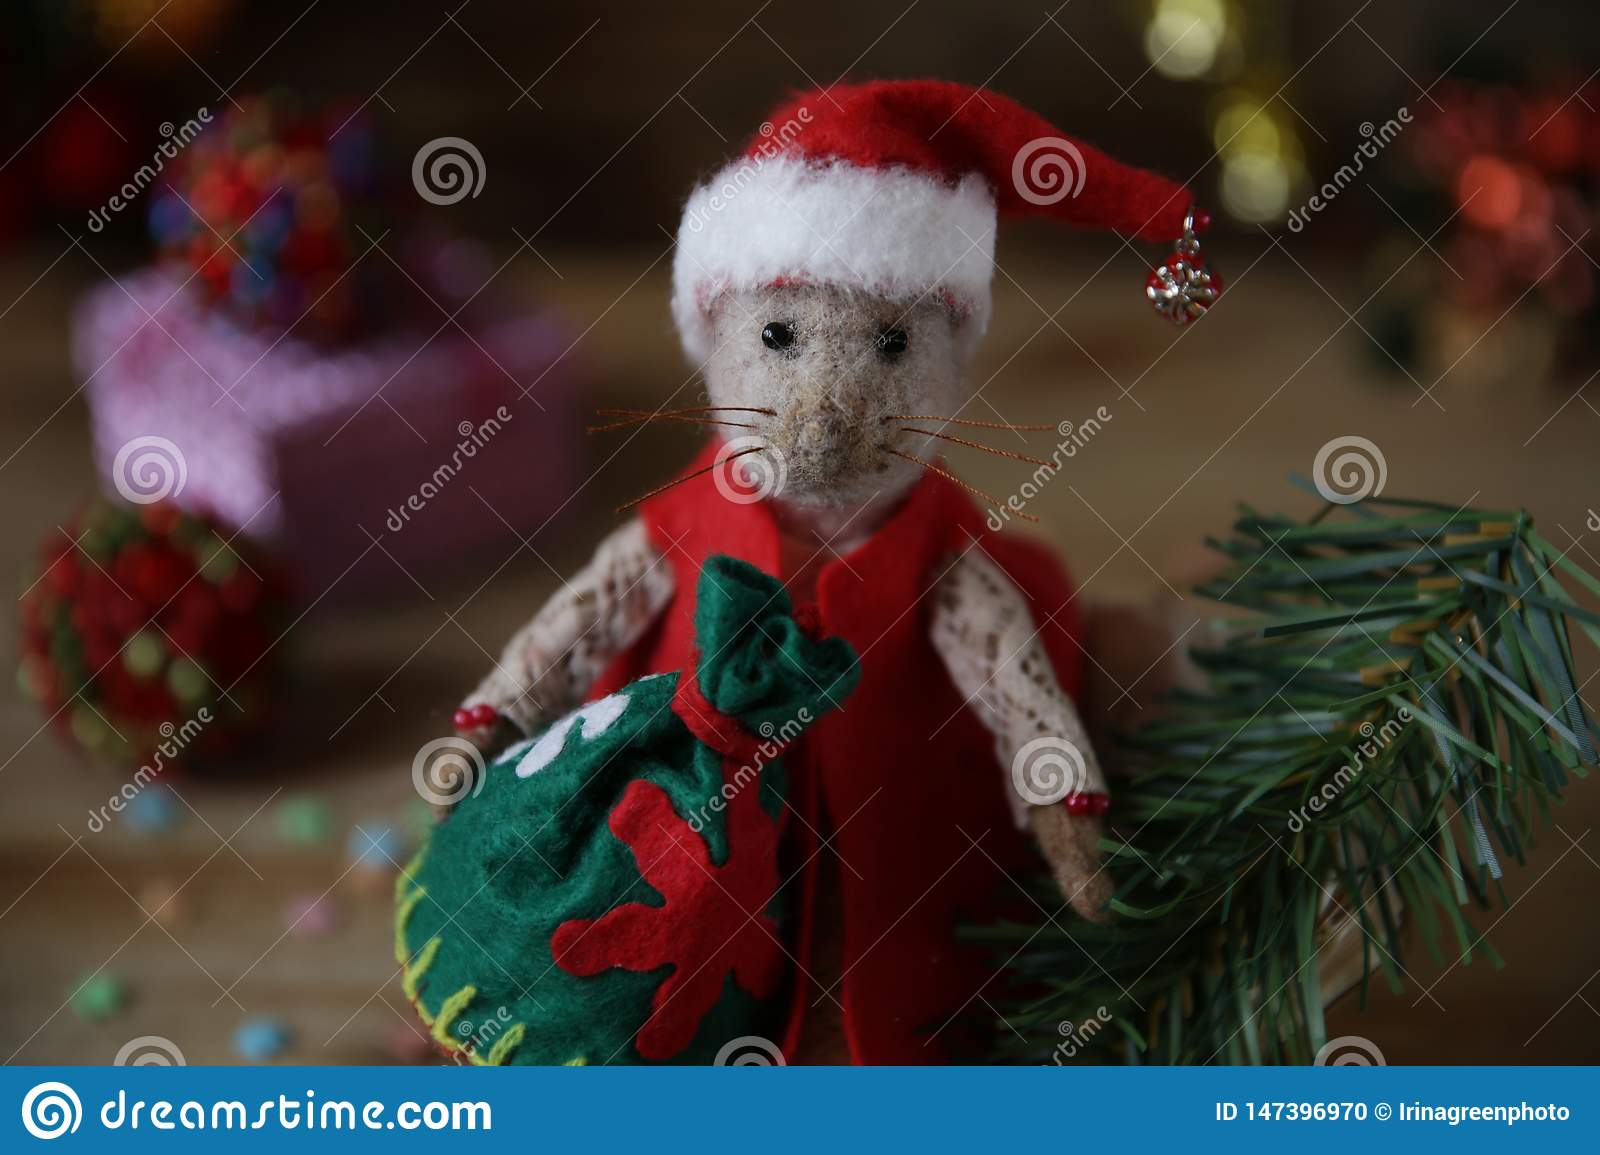 Chinese Christmas.Santa Claus Rat With A Bag Of Gifts And A Christmas Tree